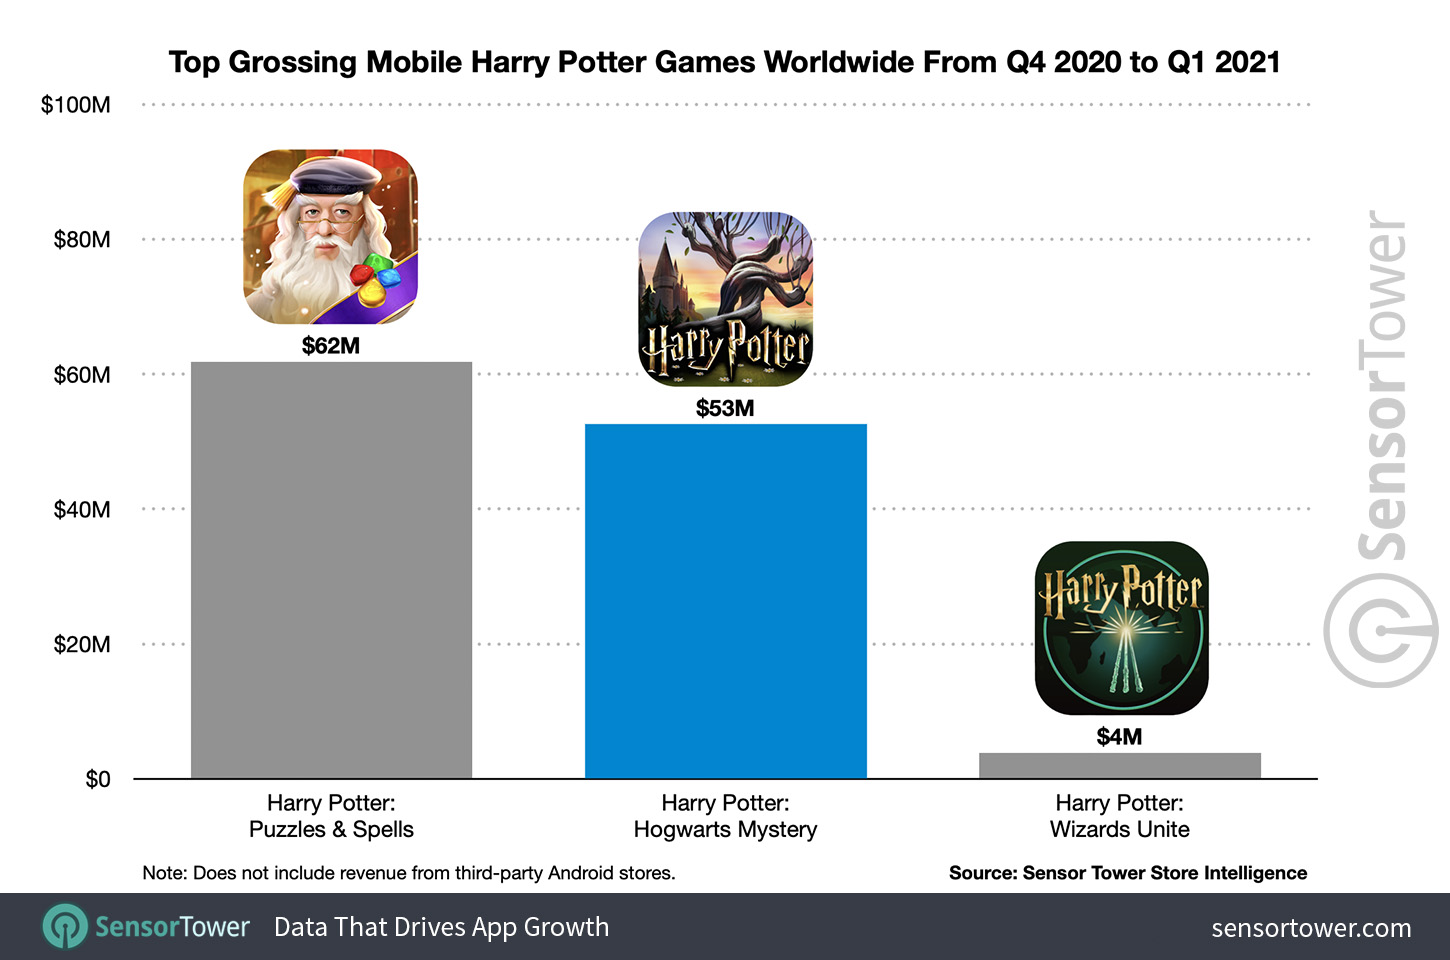 Top-grossing Harry Potter mobile games in the world from Q4 2020 to Q1 2021